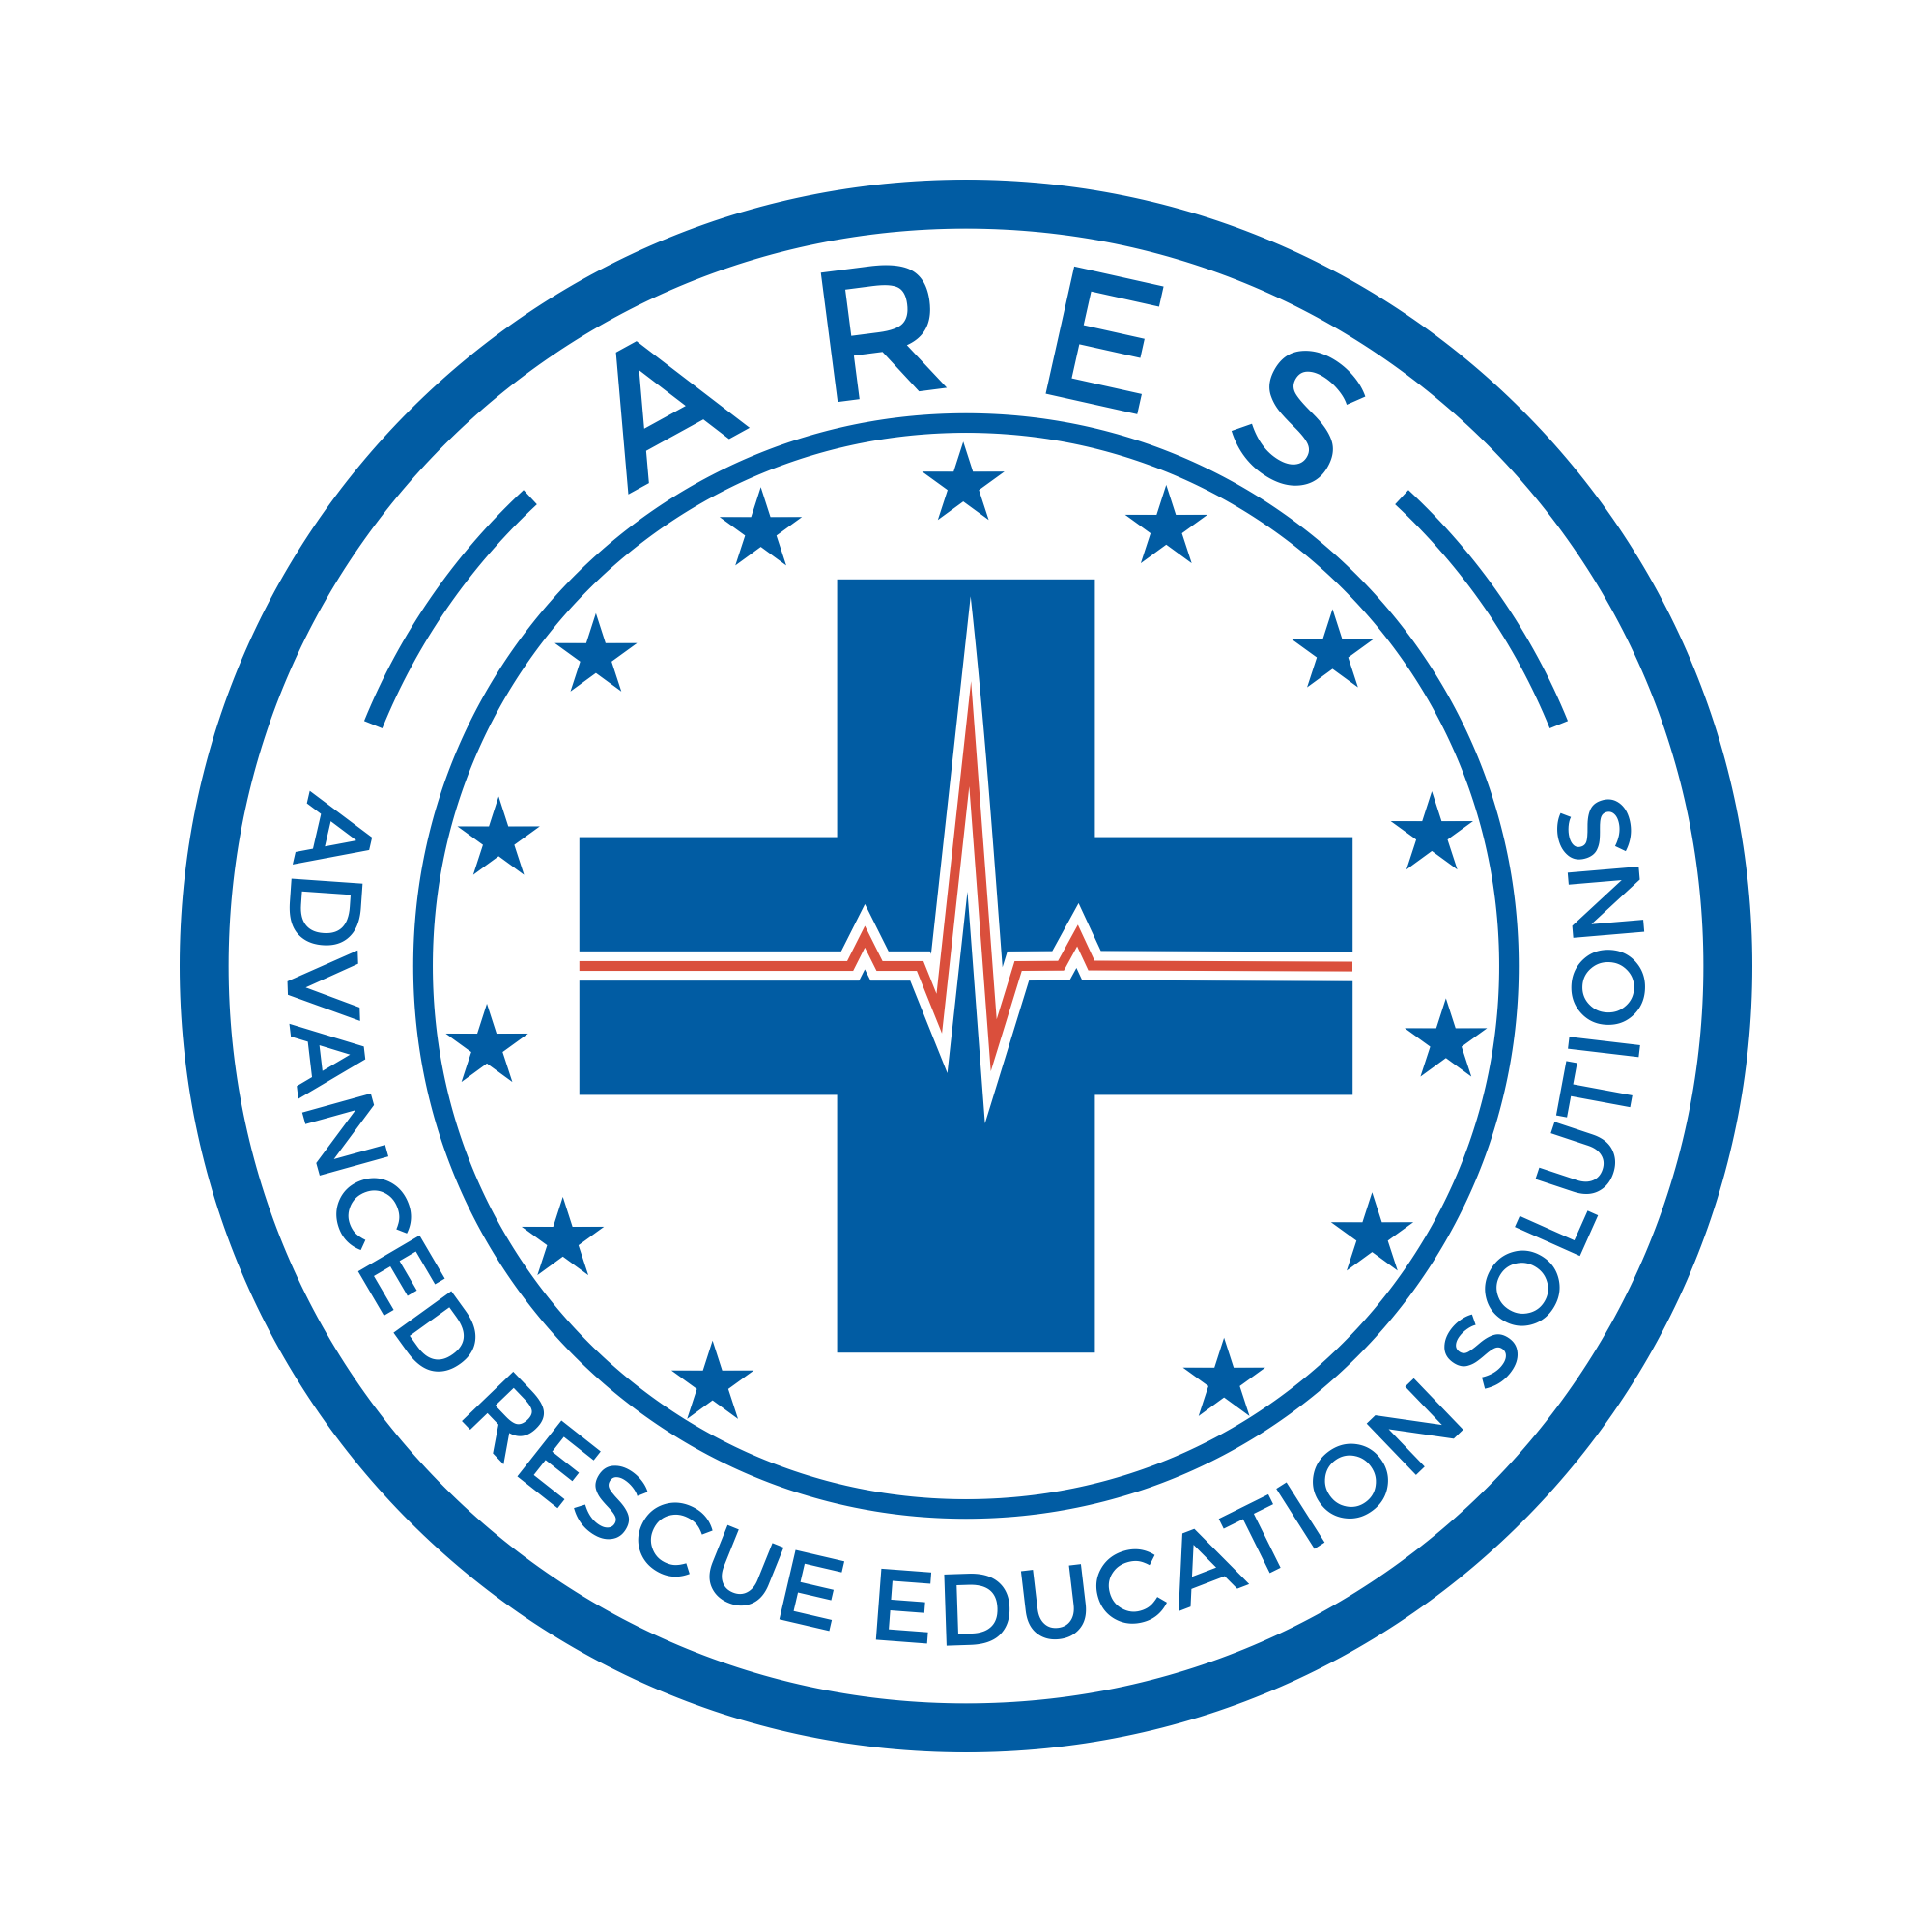 logo needed for veteran owned emergency medical education and public safety company